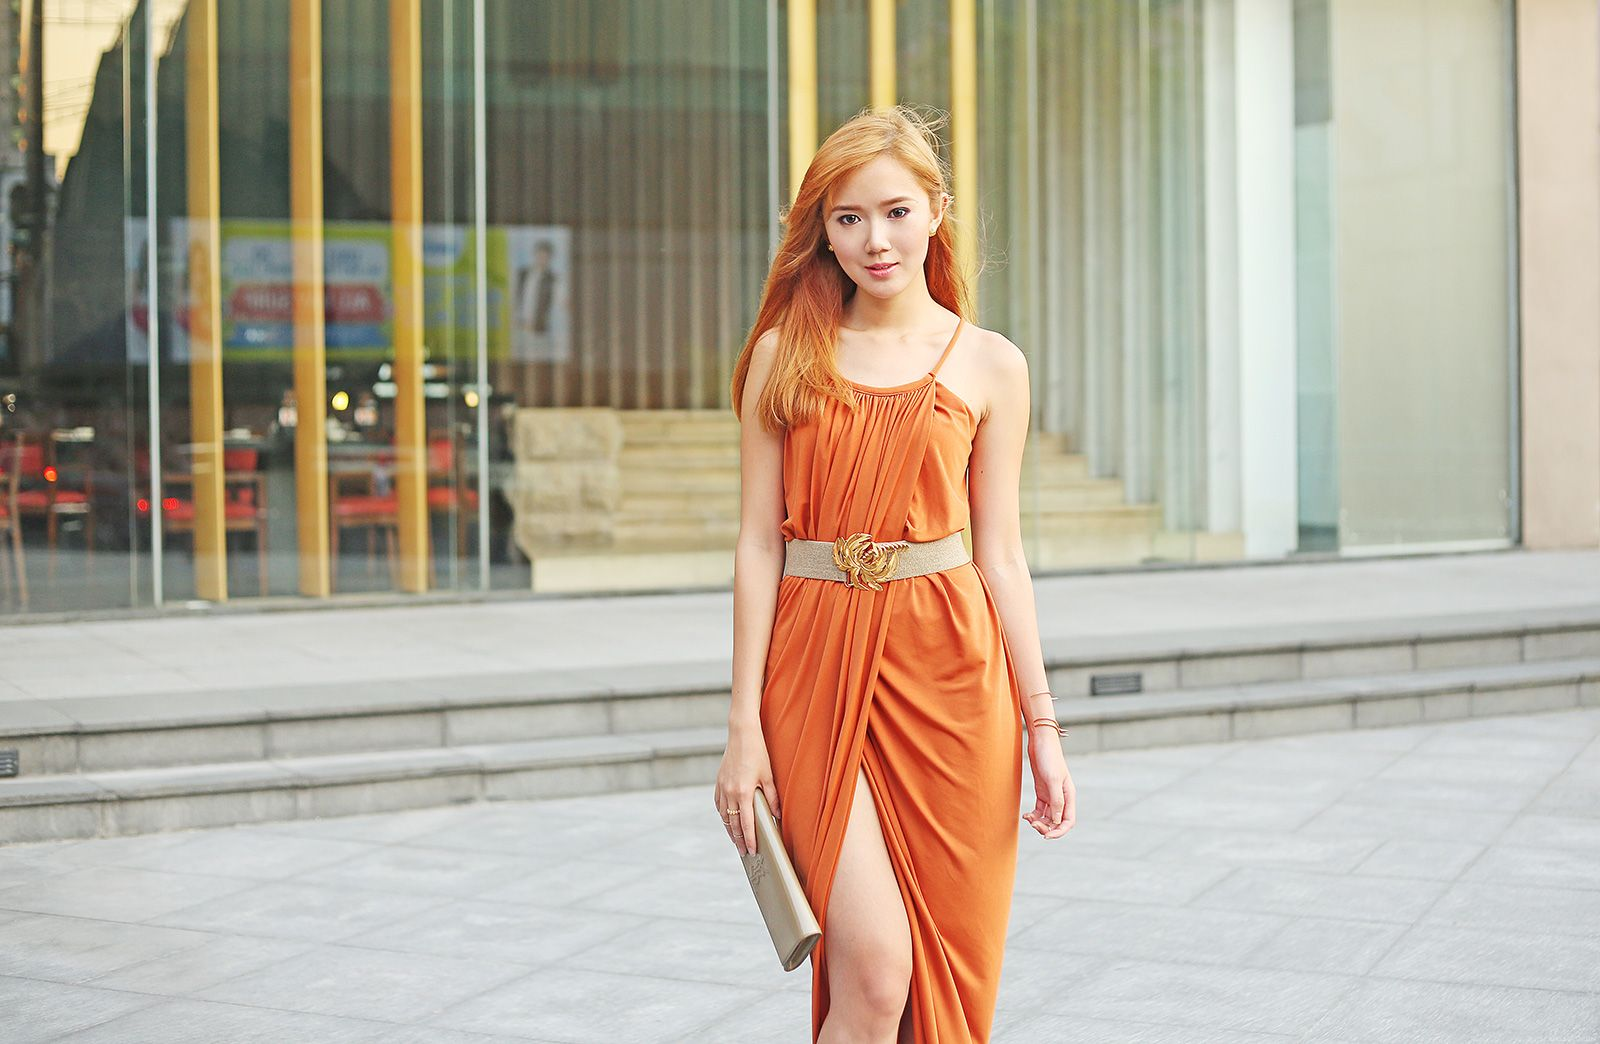 Style Staple High Slit Dress By Camille Co